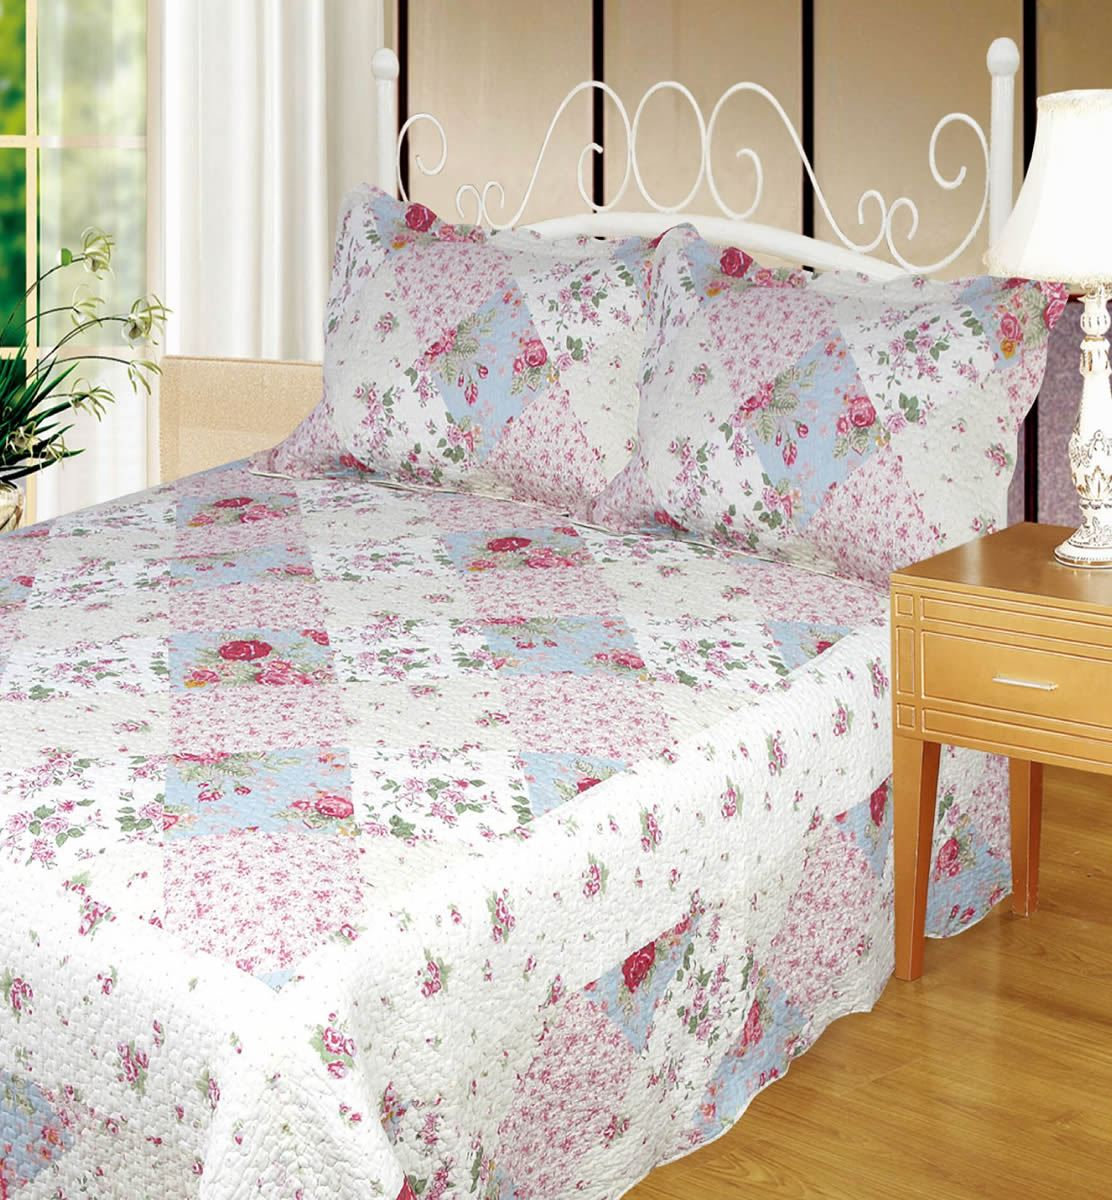 Quilted Patchwork Bedspread 100% Cotton Single Double King Ariana